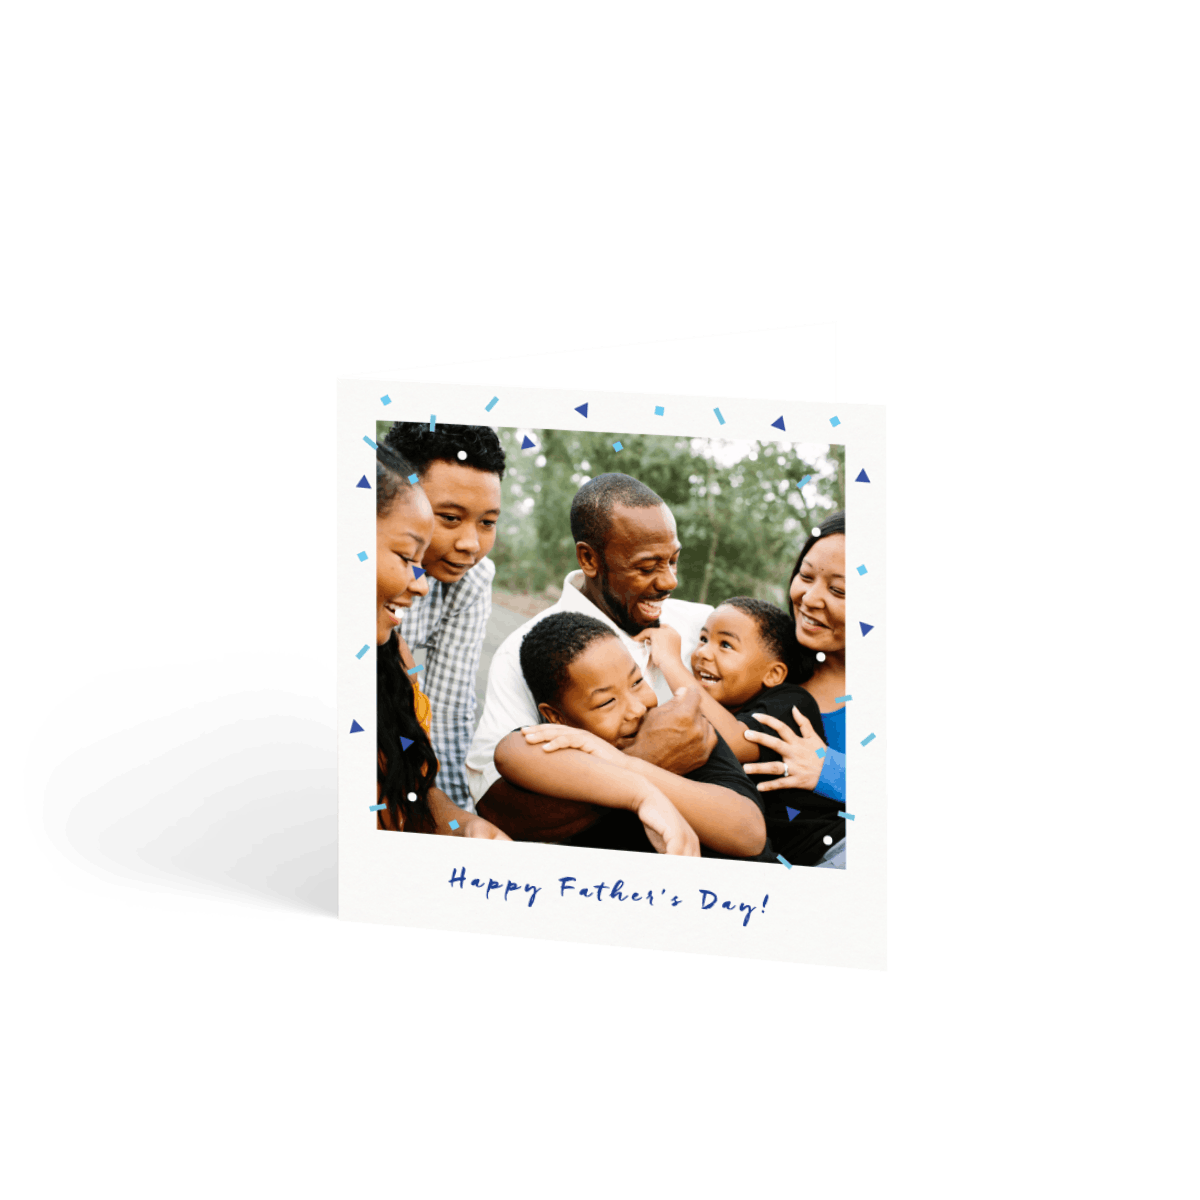 Https%3a%2f%2fwww.papier.com%2fproduct image%2f7319%2f16%2ffather s day blue confetti 1799 front 1581456542.png?ixlib=rb 1.1